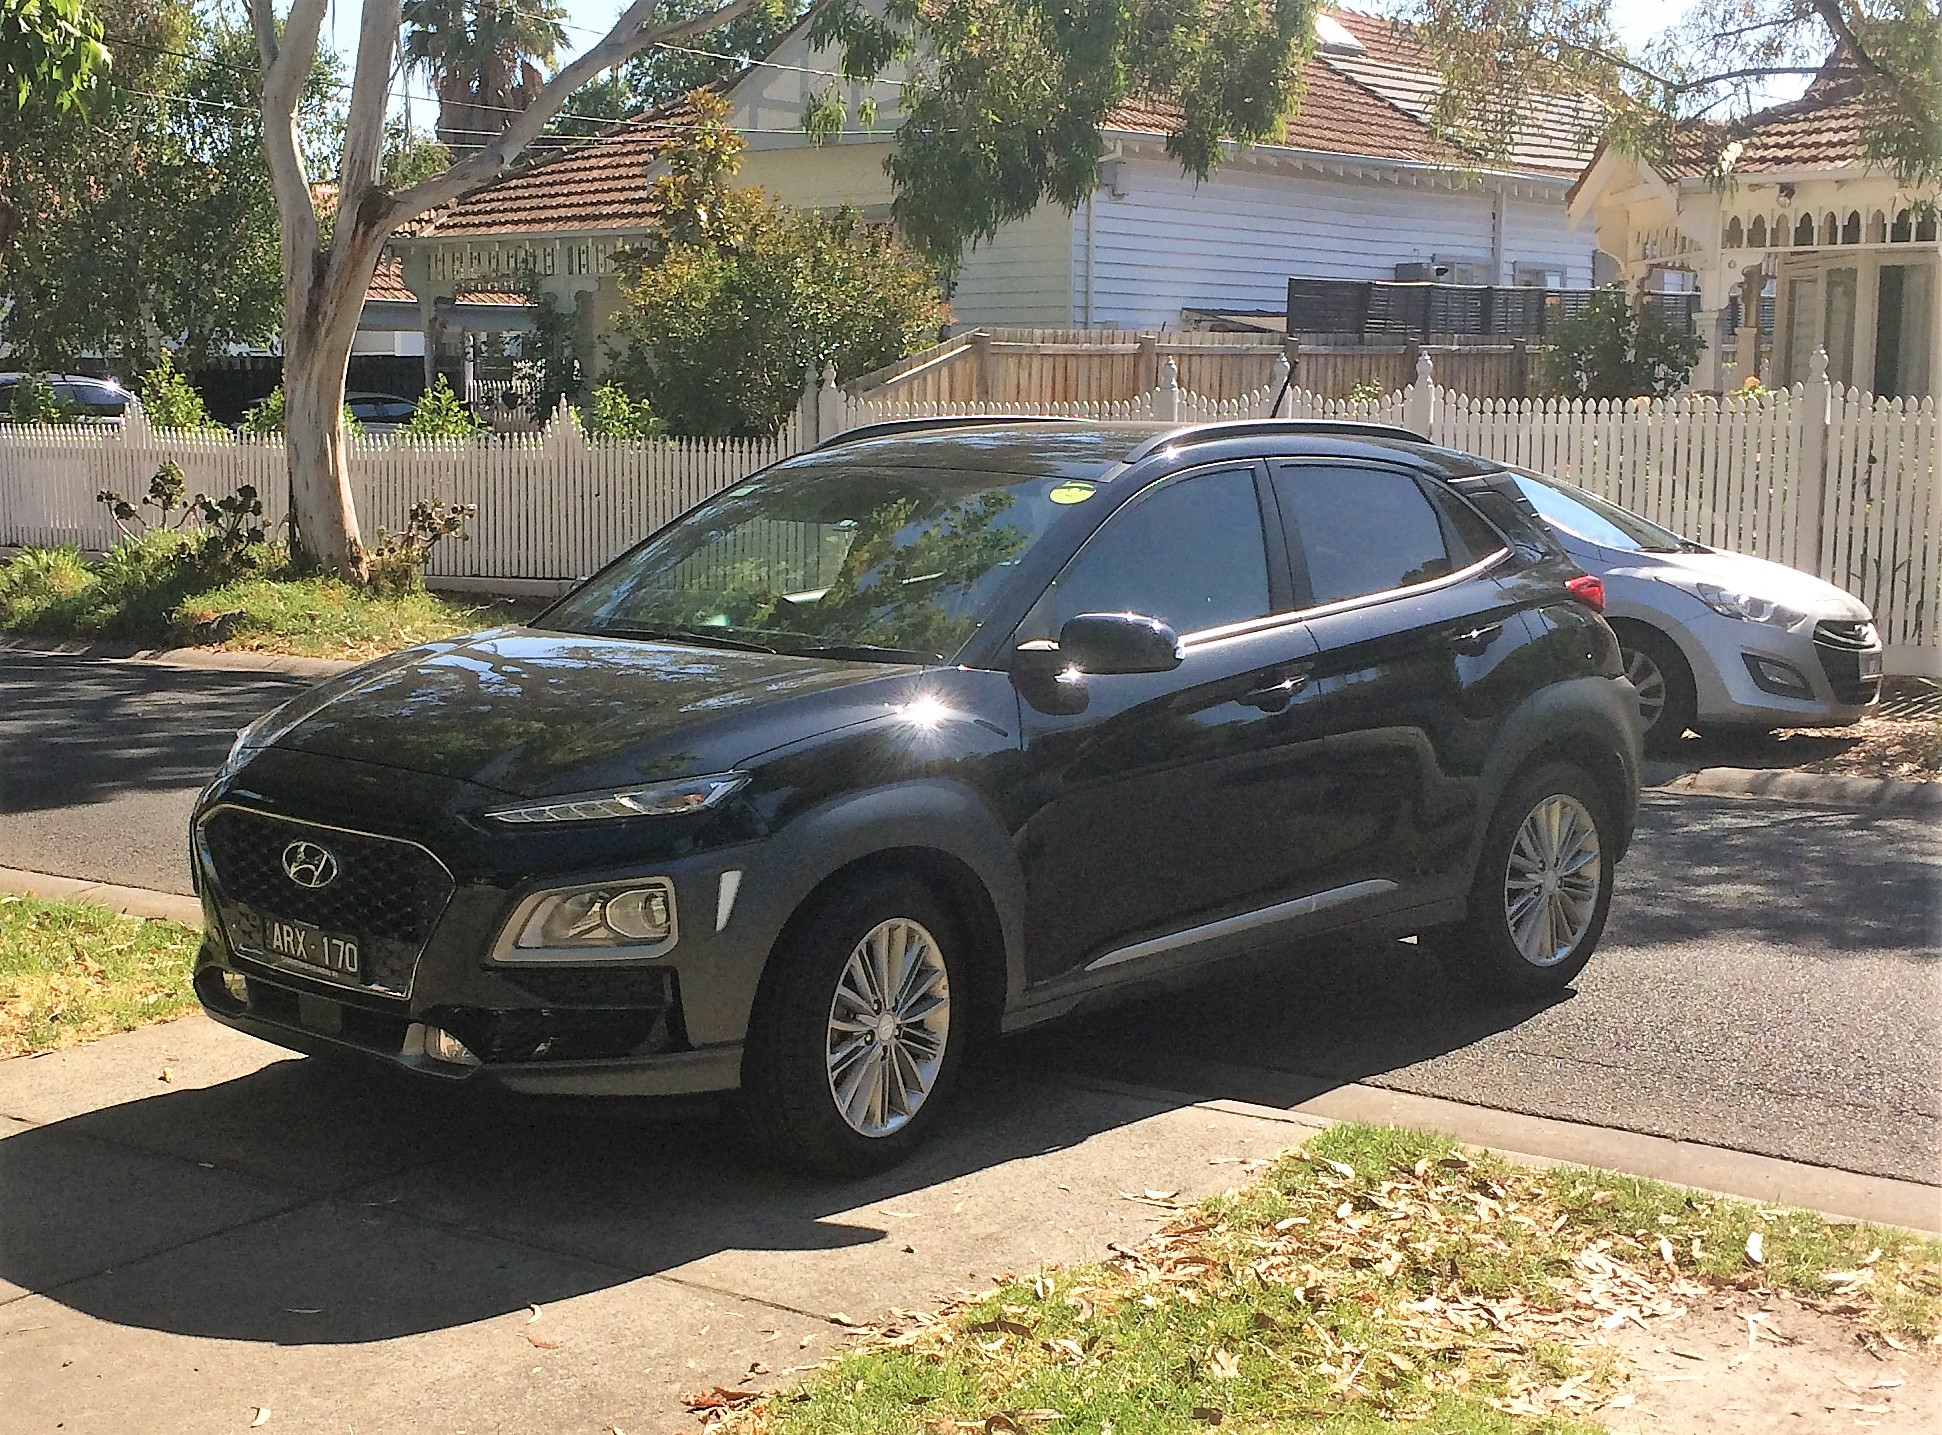 Picture of monique's 2018 Hyundai Kona